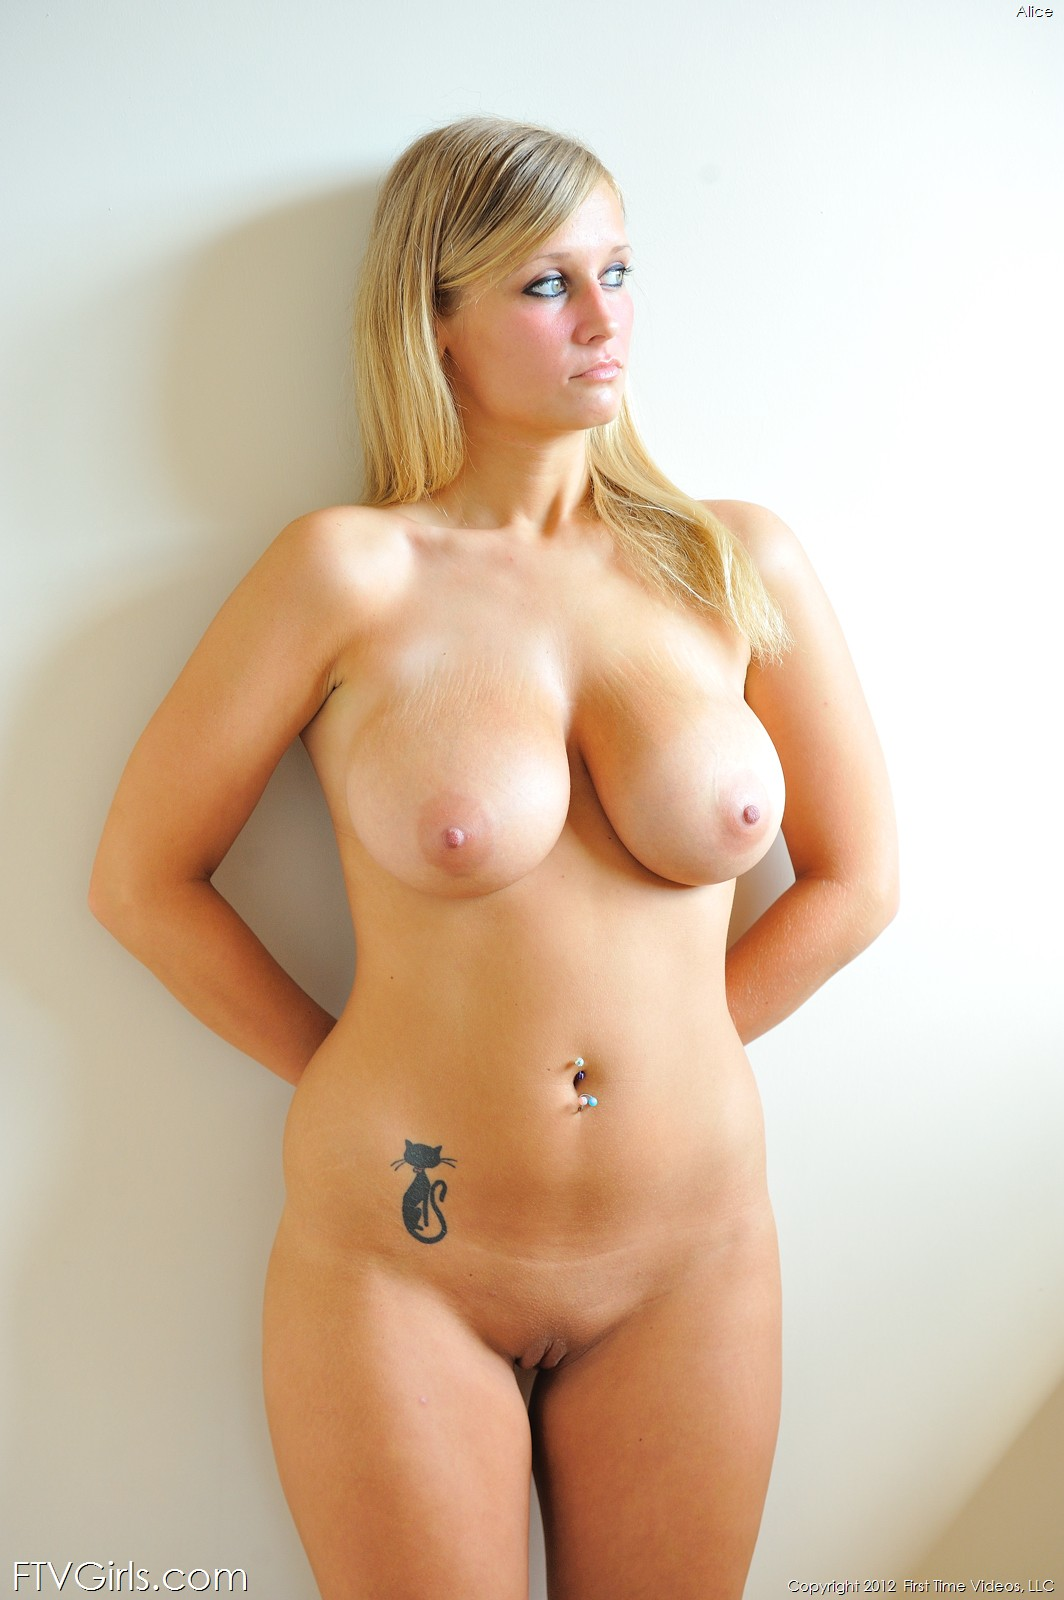 Sexy curvy blonde porn consider, that